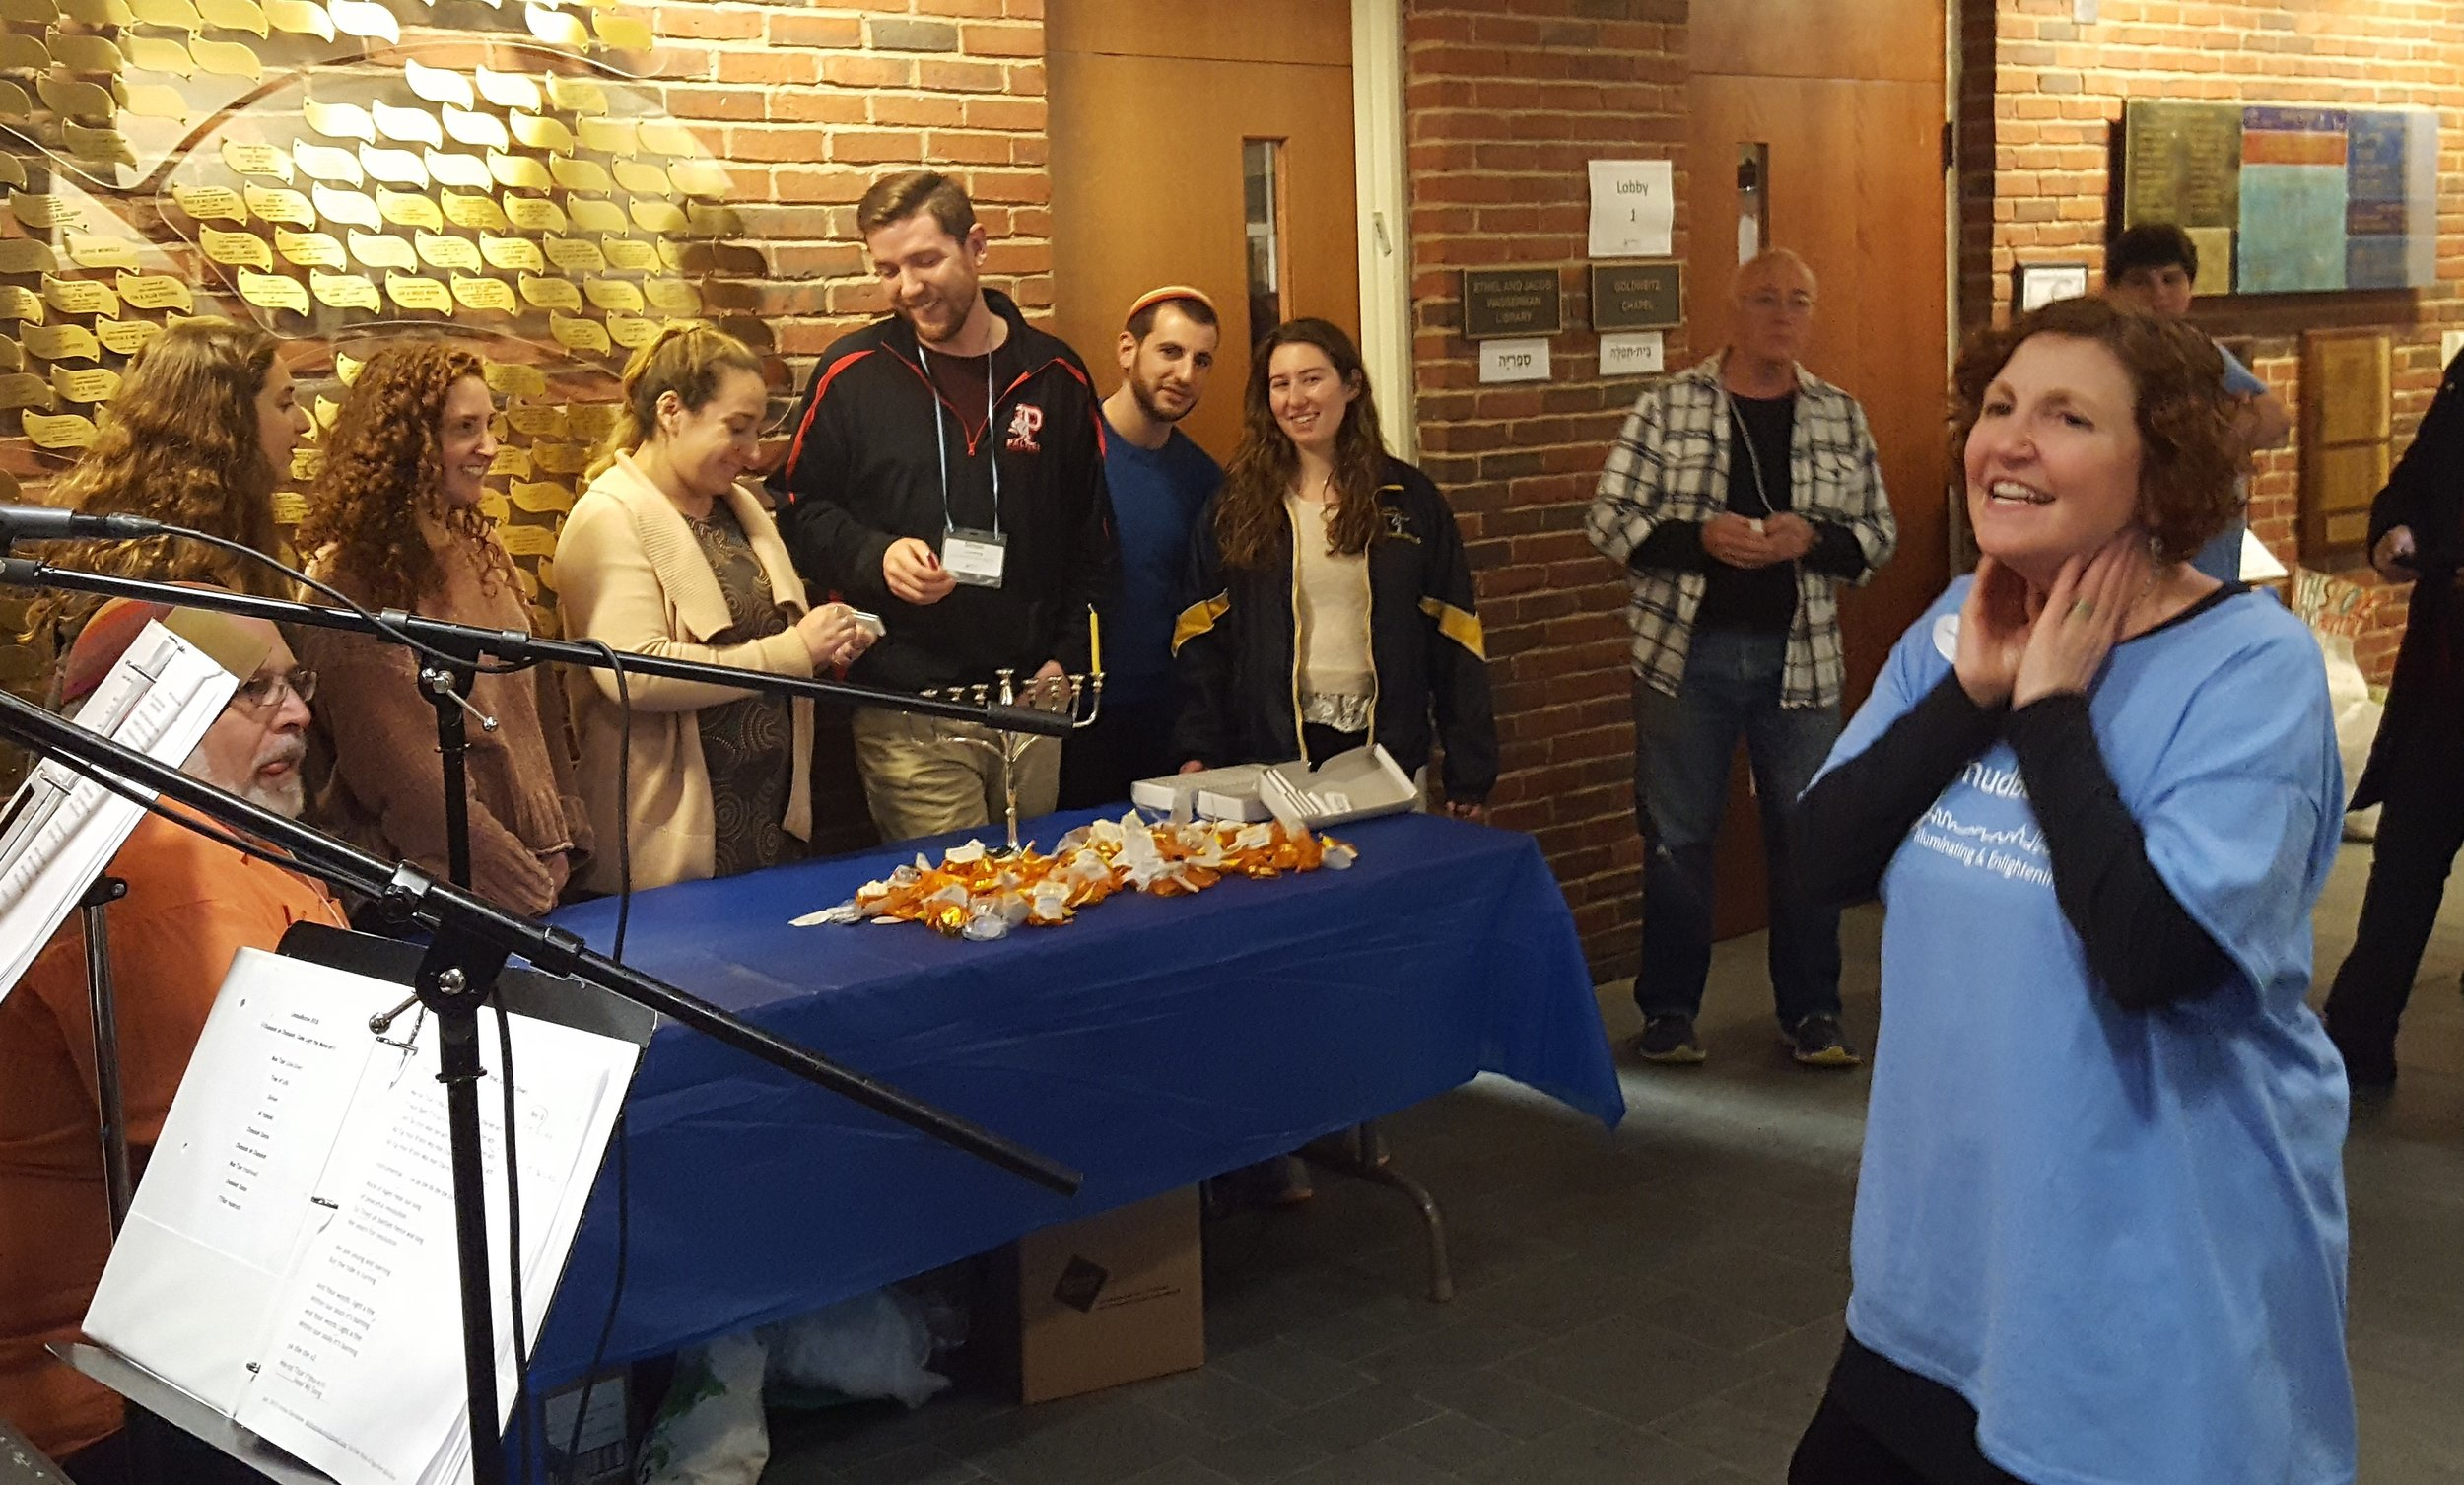 LimmudBoston ended on the first night of Hanukah this year.